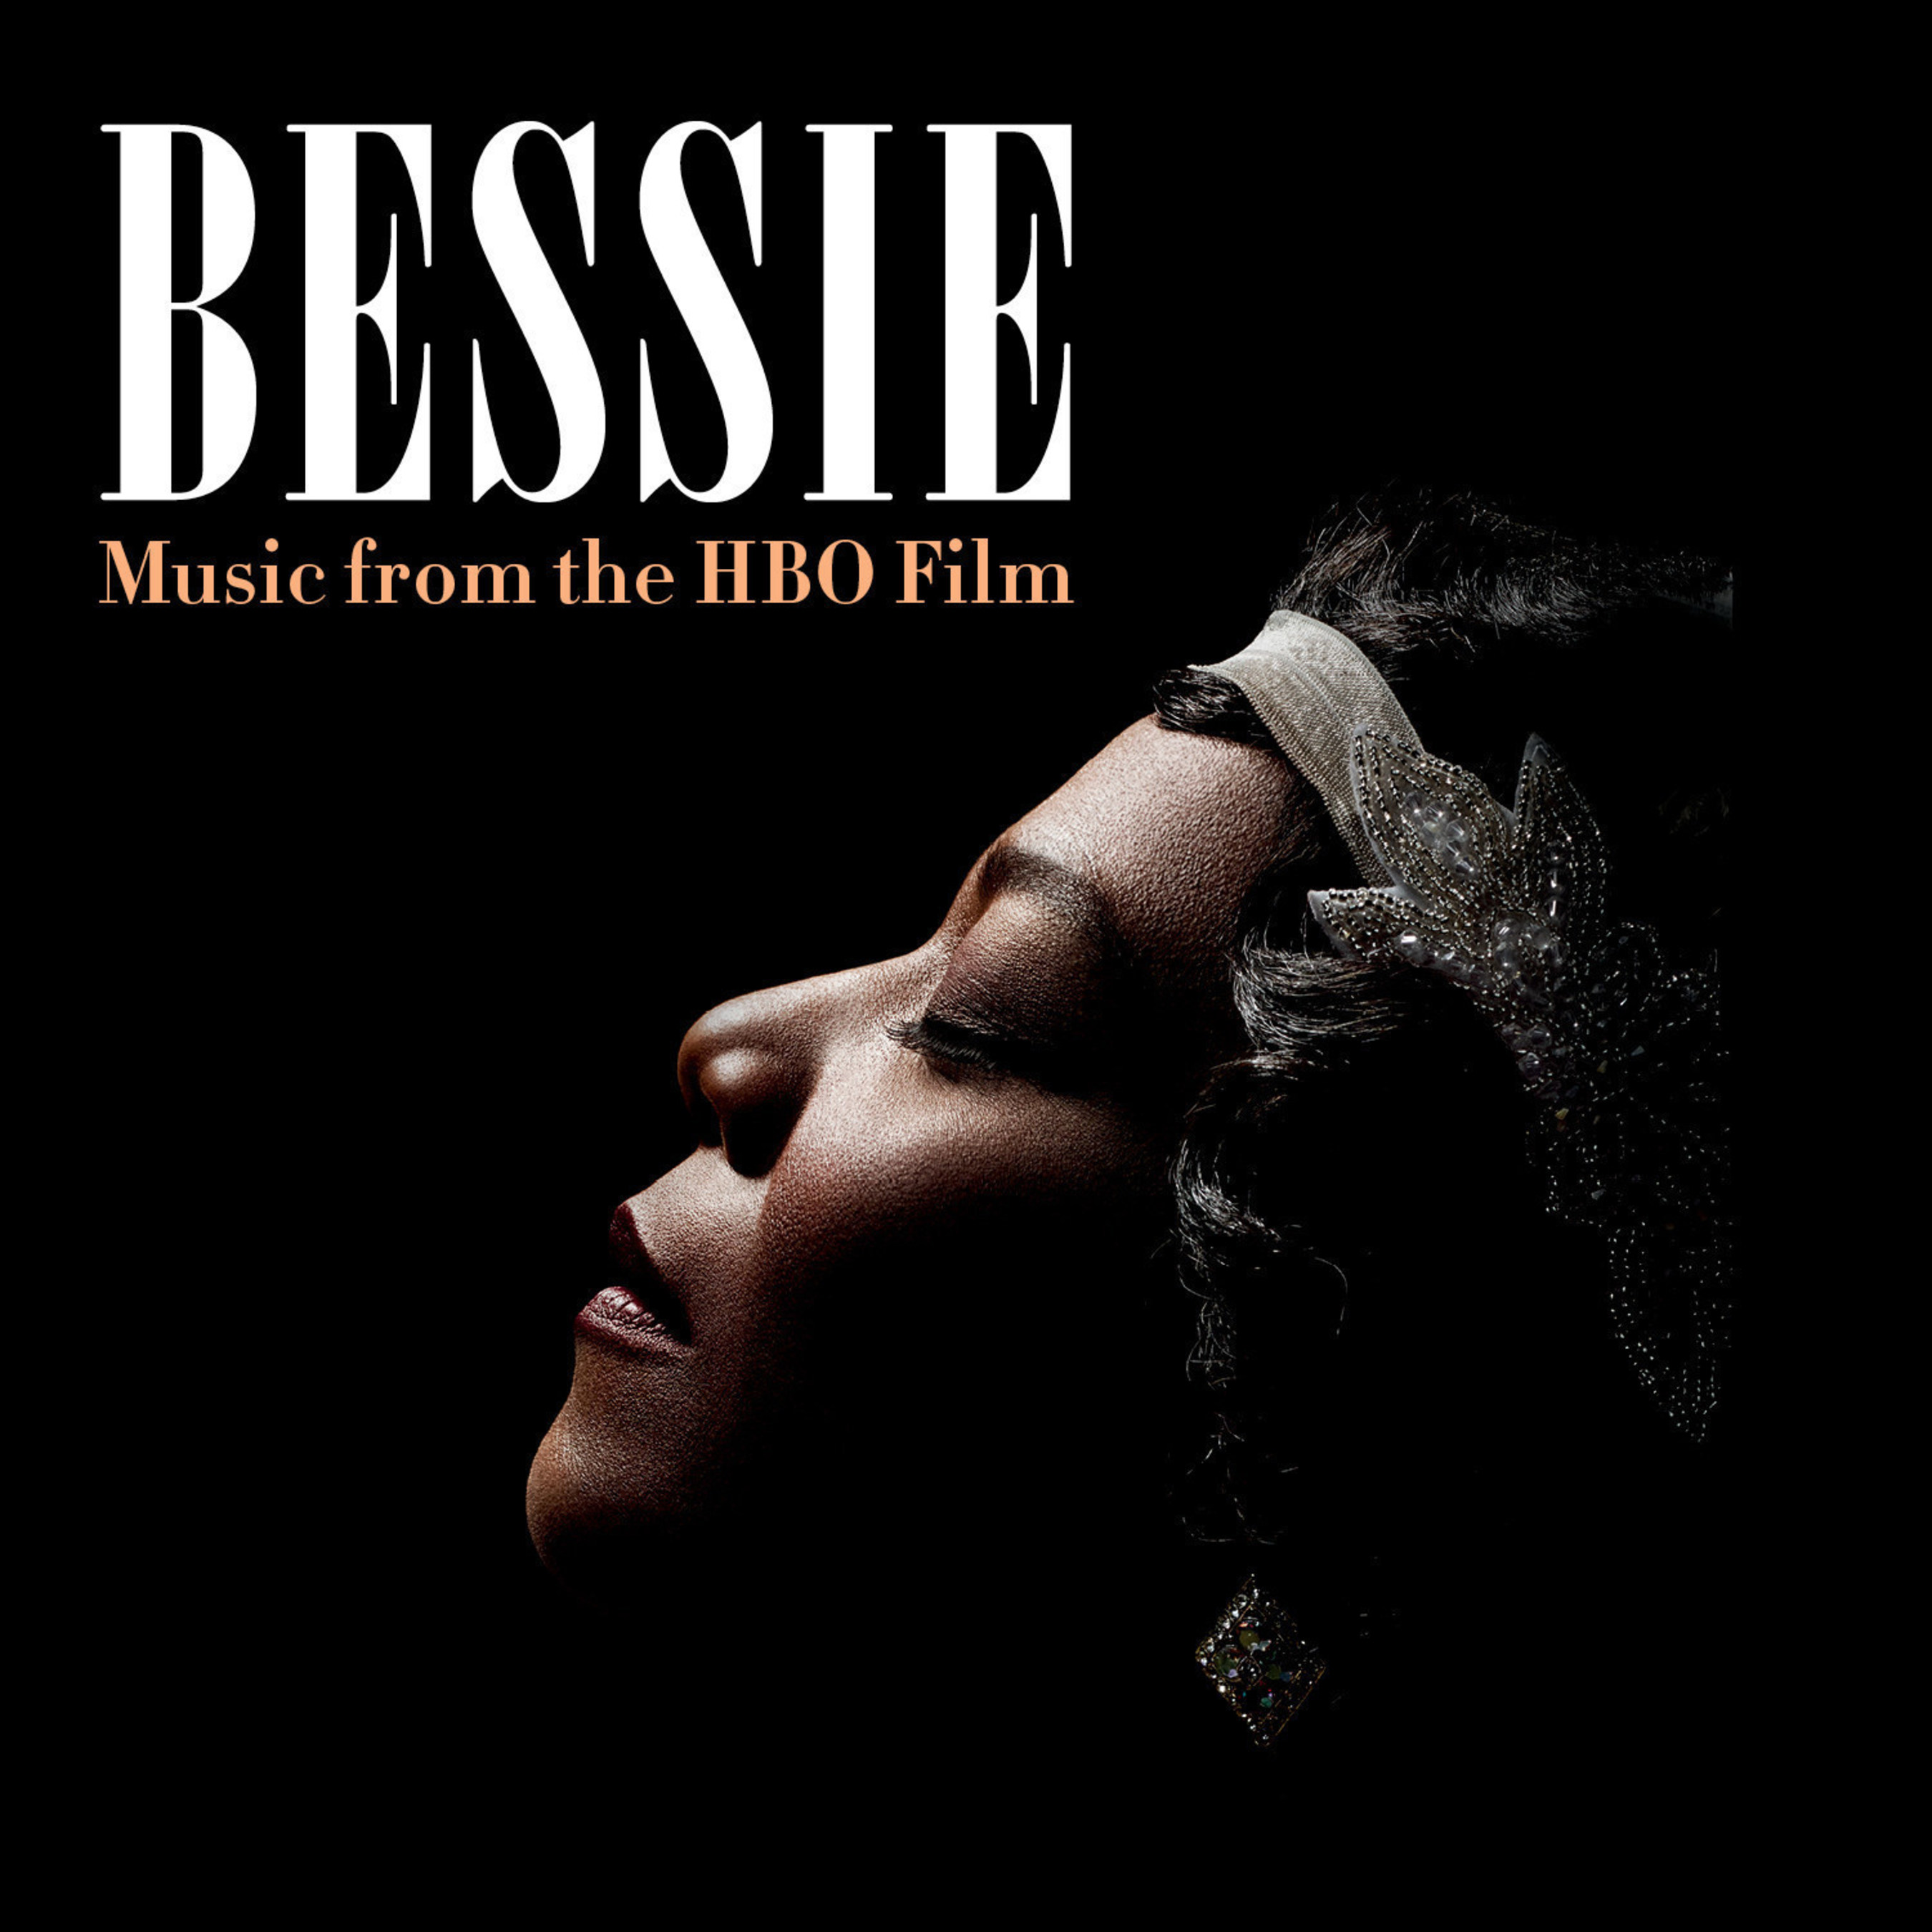 Legacy Recordings, the catalog division of Sony Music Entertainment, is proud to announce the digital release of Bessie (Music from the HBO Film) on Tuesday, May 12. The official soundtrack for the upcoming HBO film will also be released on CD on Tuesday, June 2.